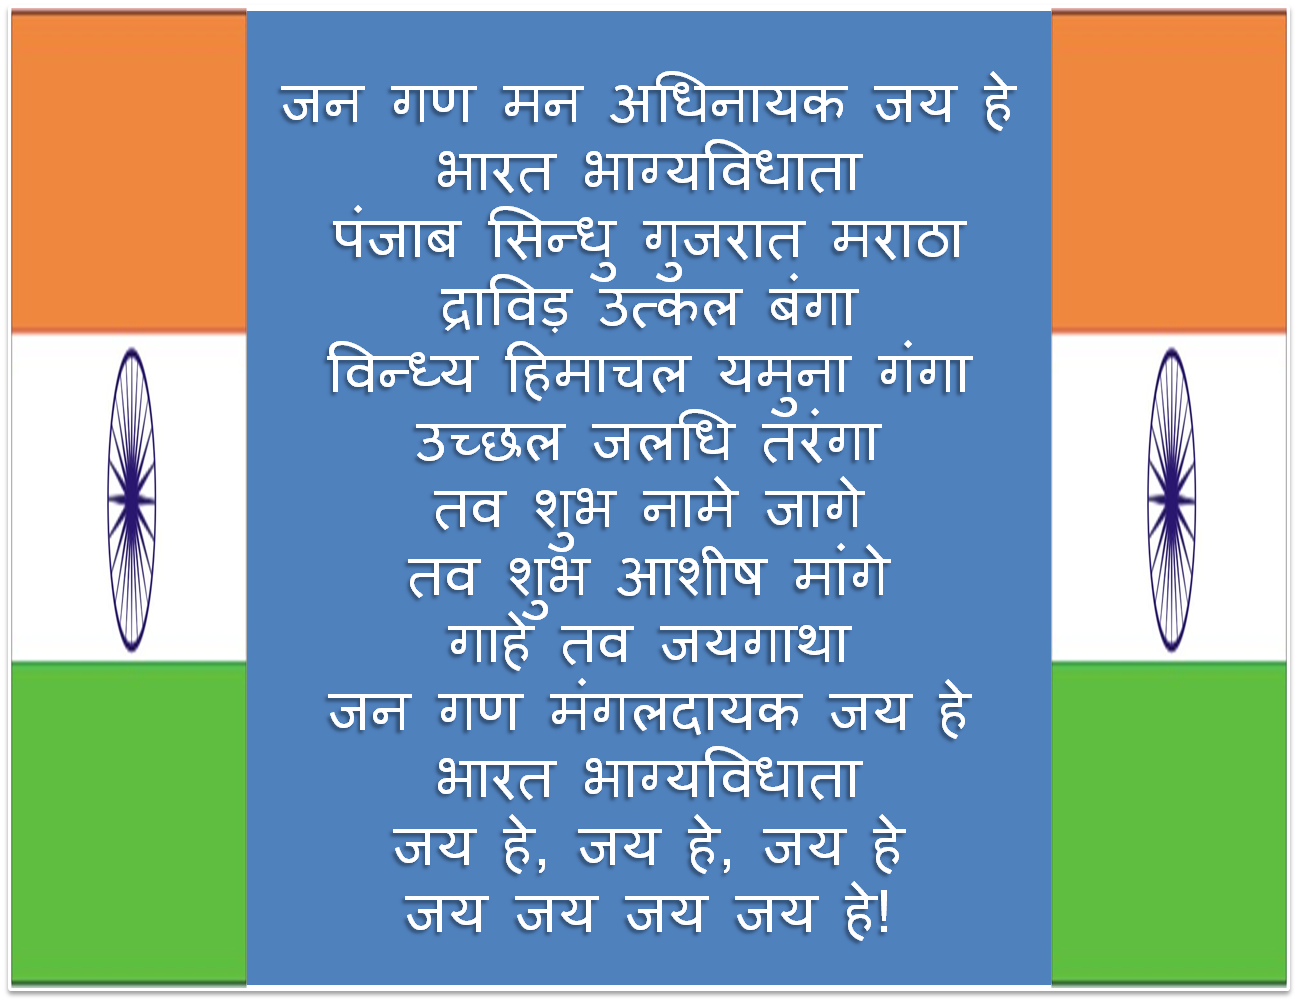 Republic day india short essay about friendship